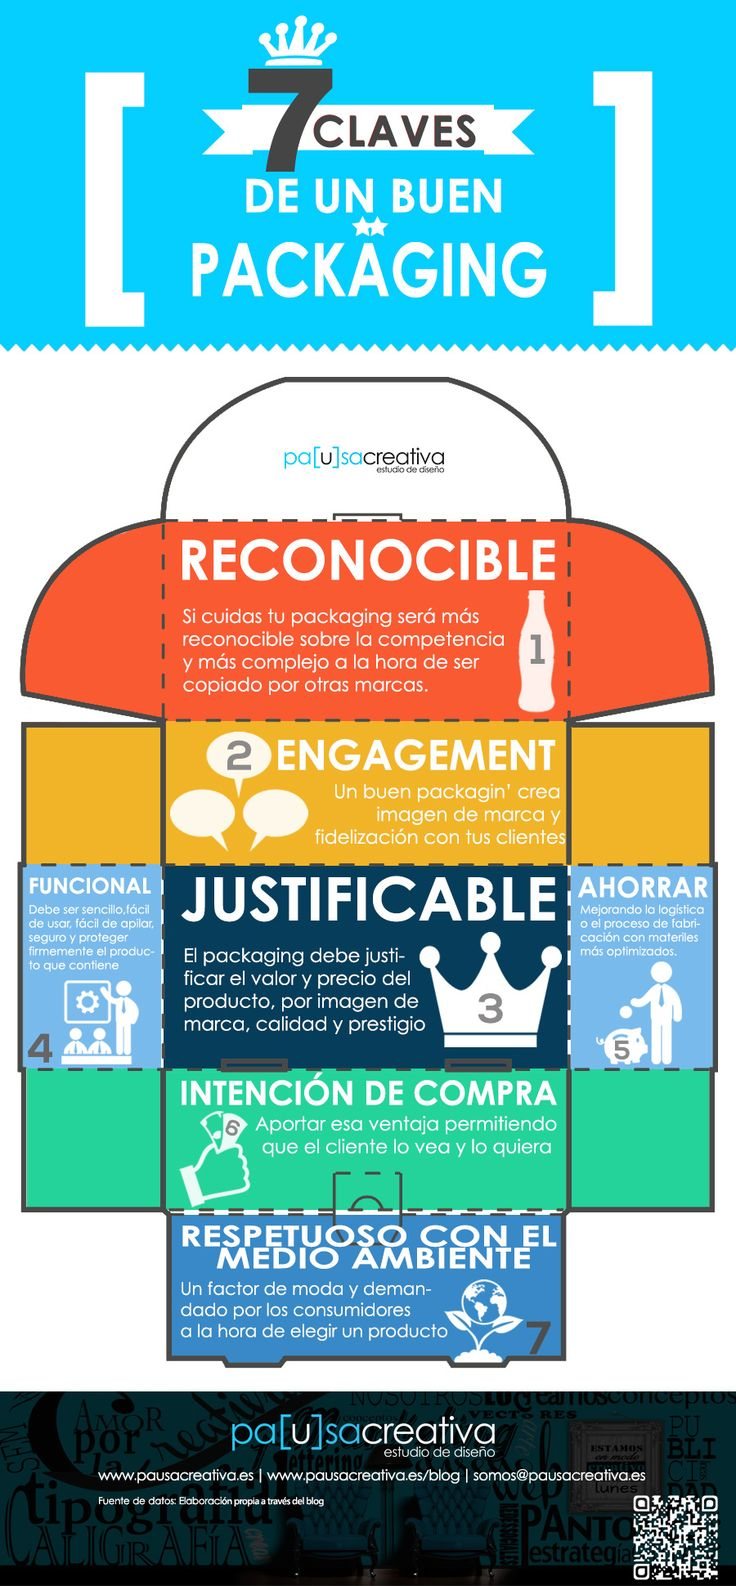 #INFOGRAFIA 7 Claves para un buen #packaging - PAUSA CREATIVA | BLOG